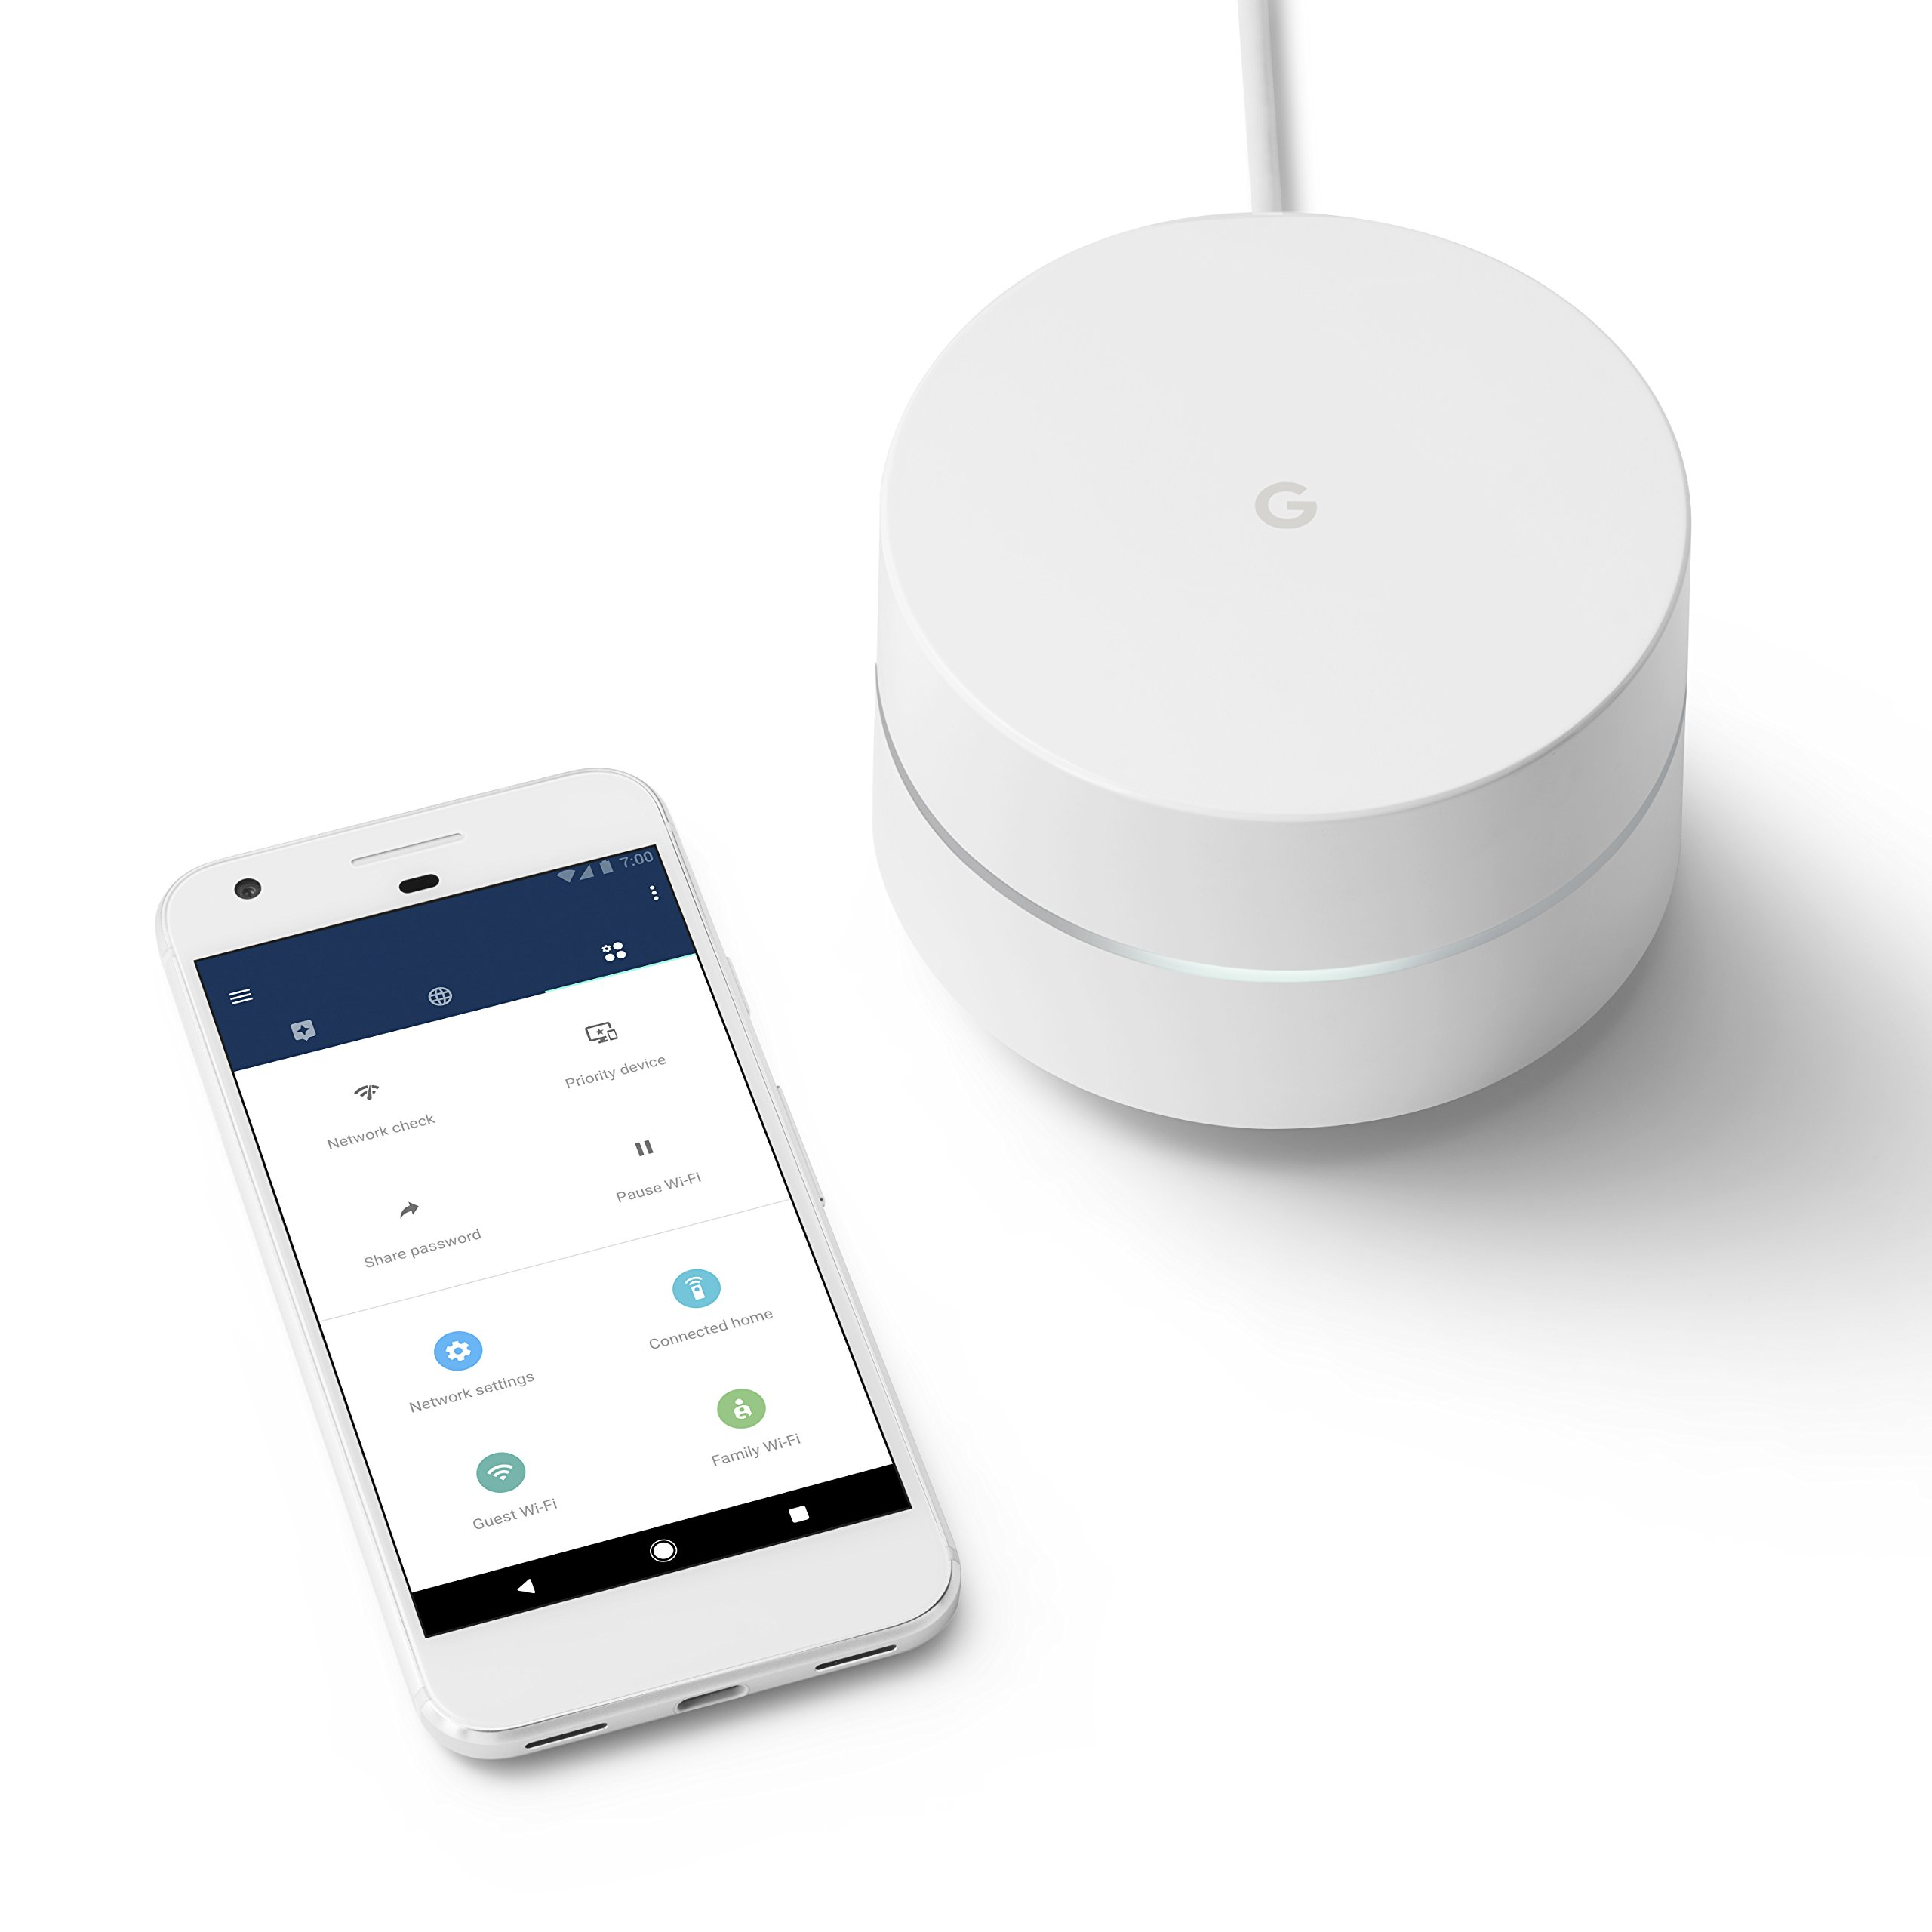 Buy Google Wifi Router Now!